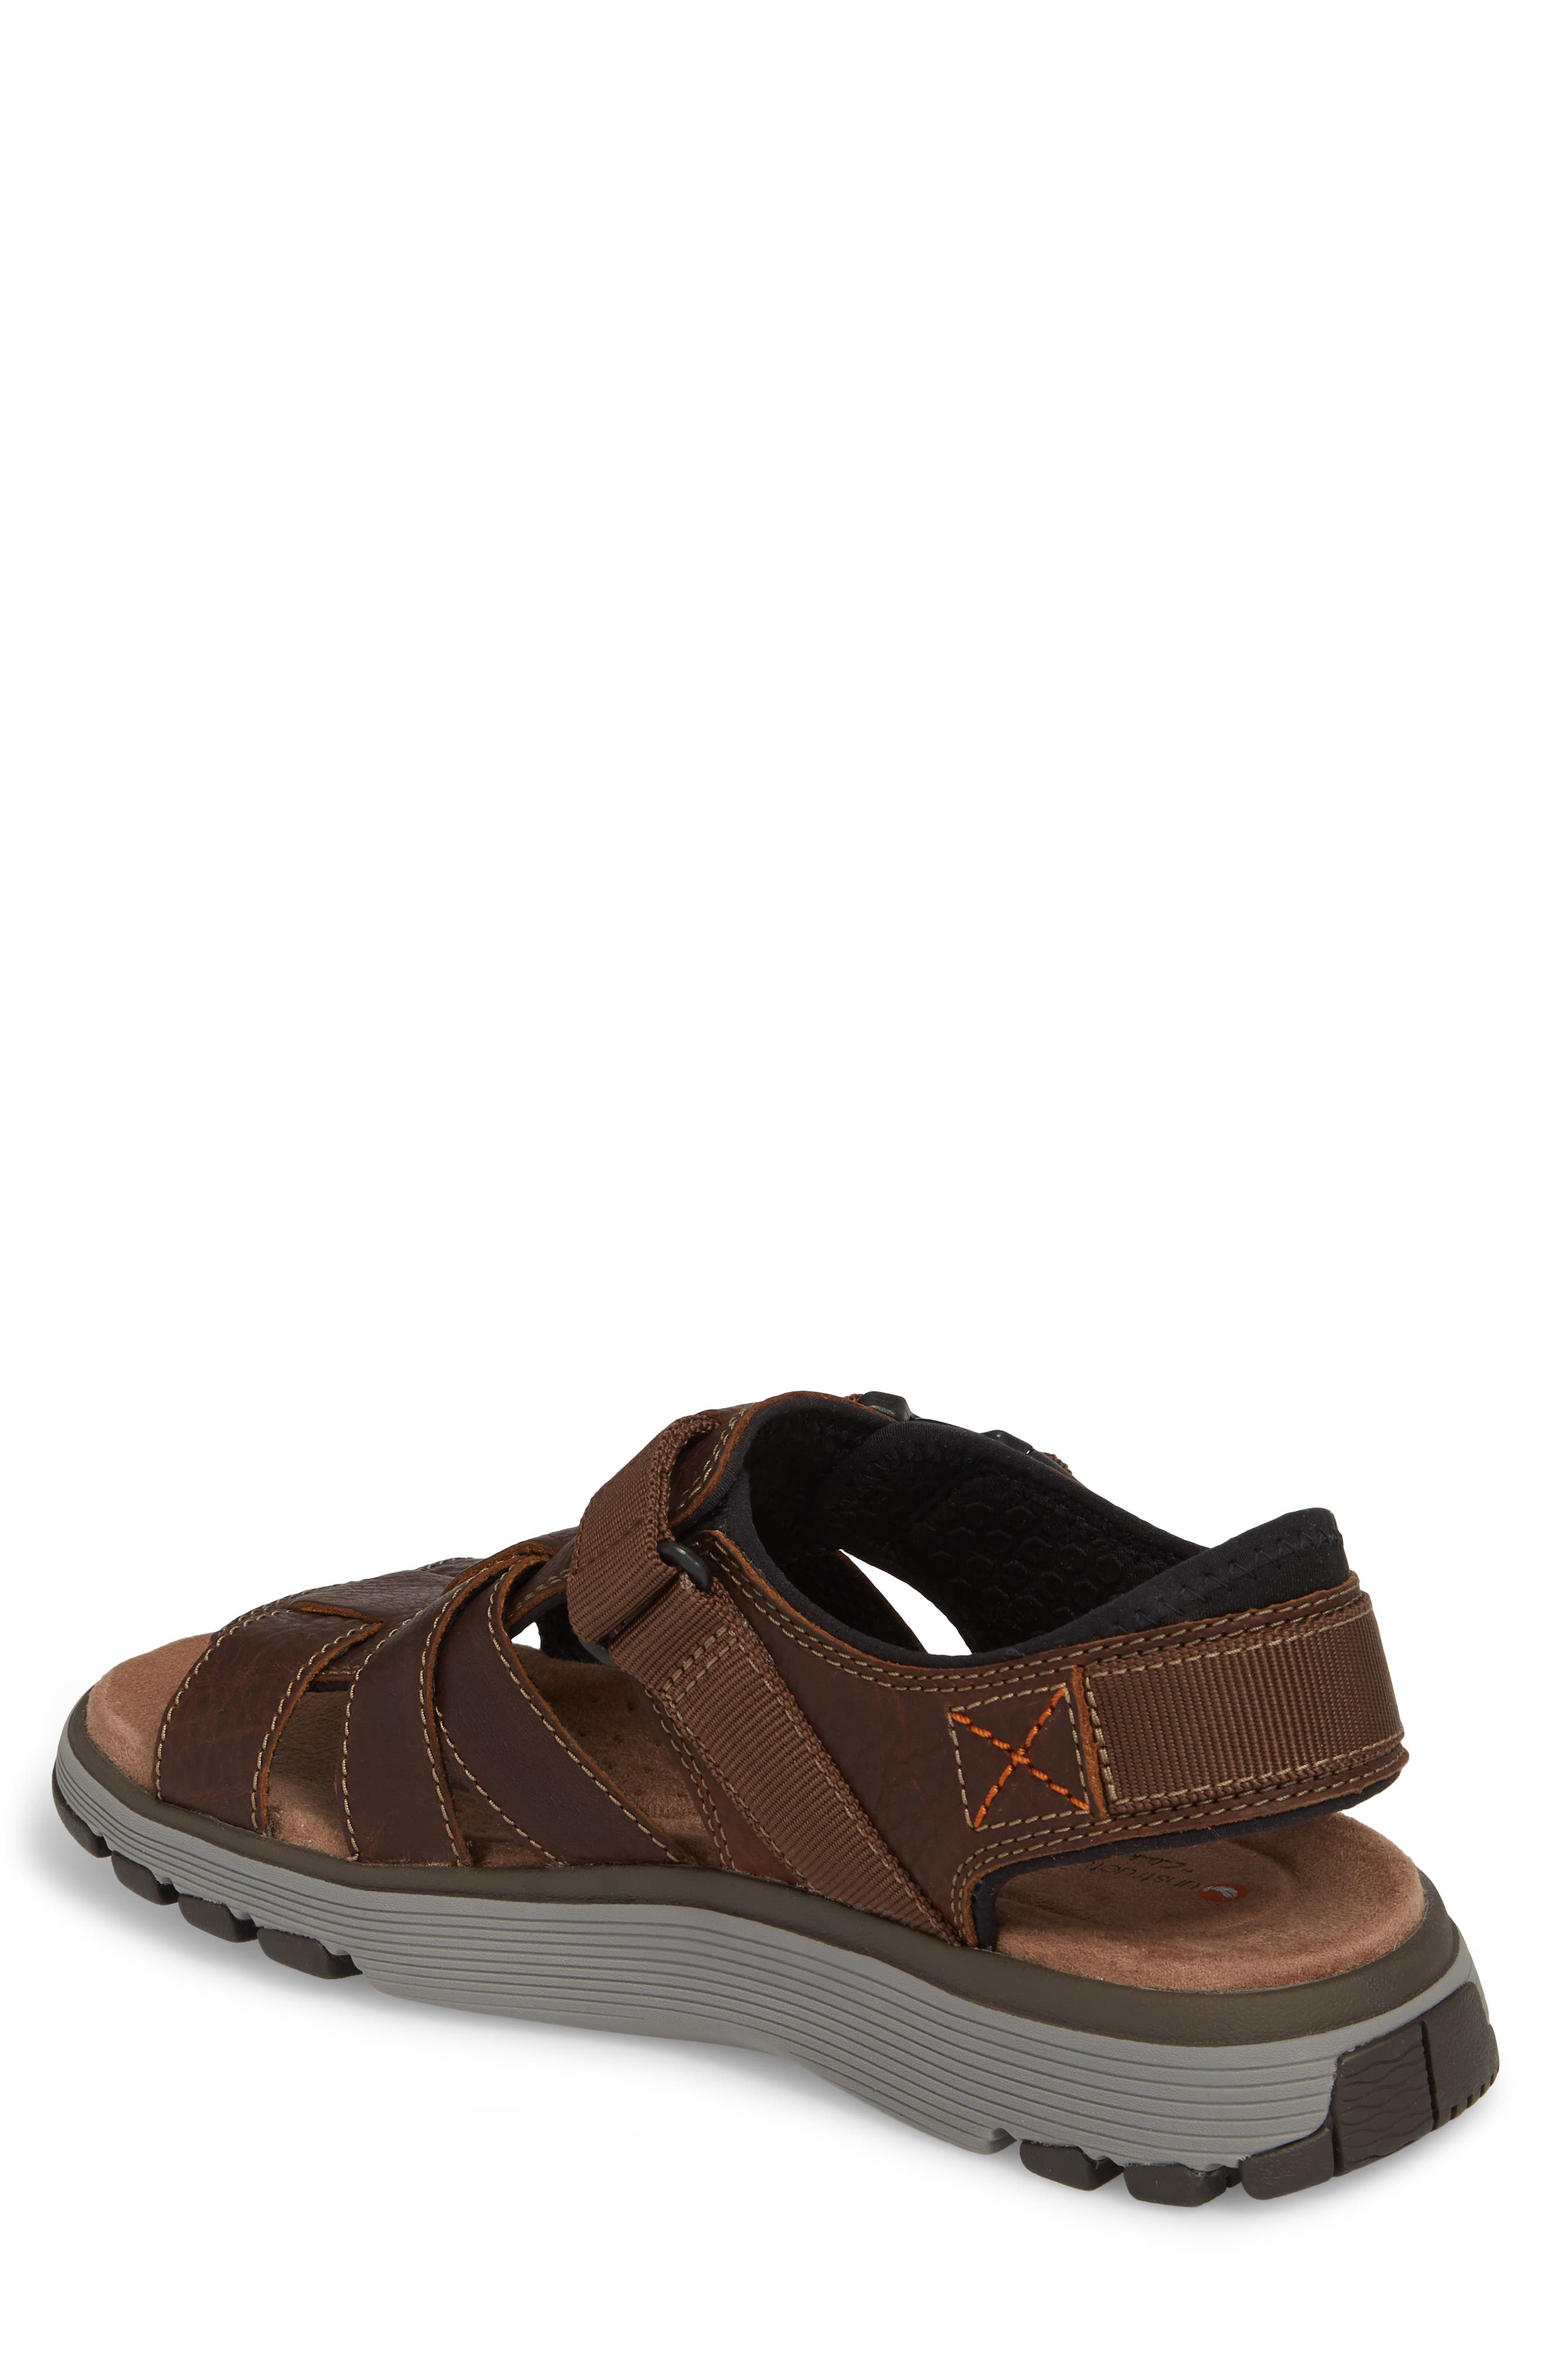 Clarks<sup>®</sup> Untrek Cove Fisherman Sandal,                             Alternate thumbnail 3, color,